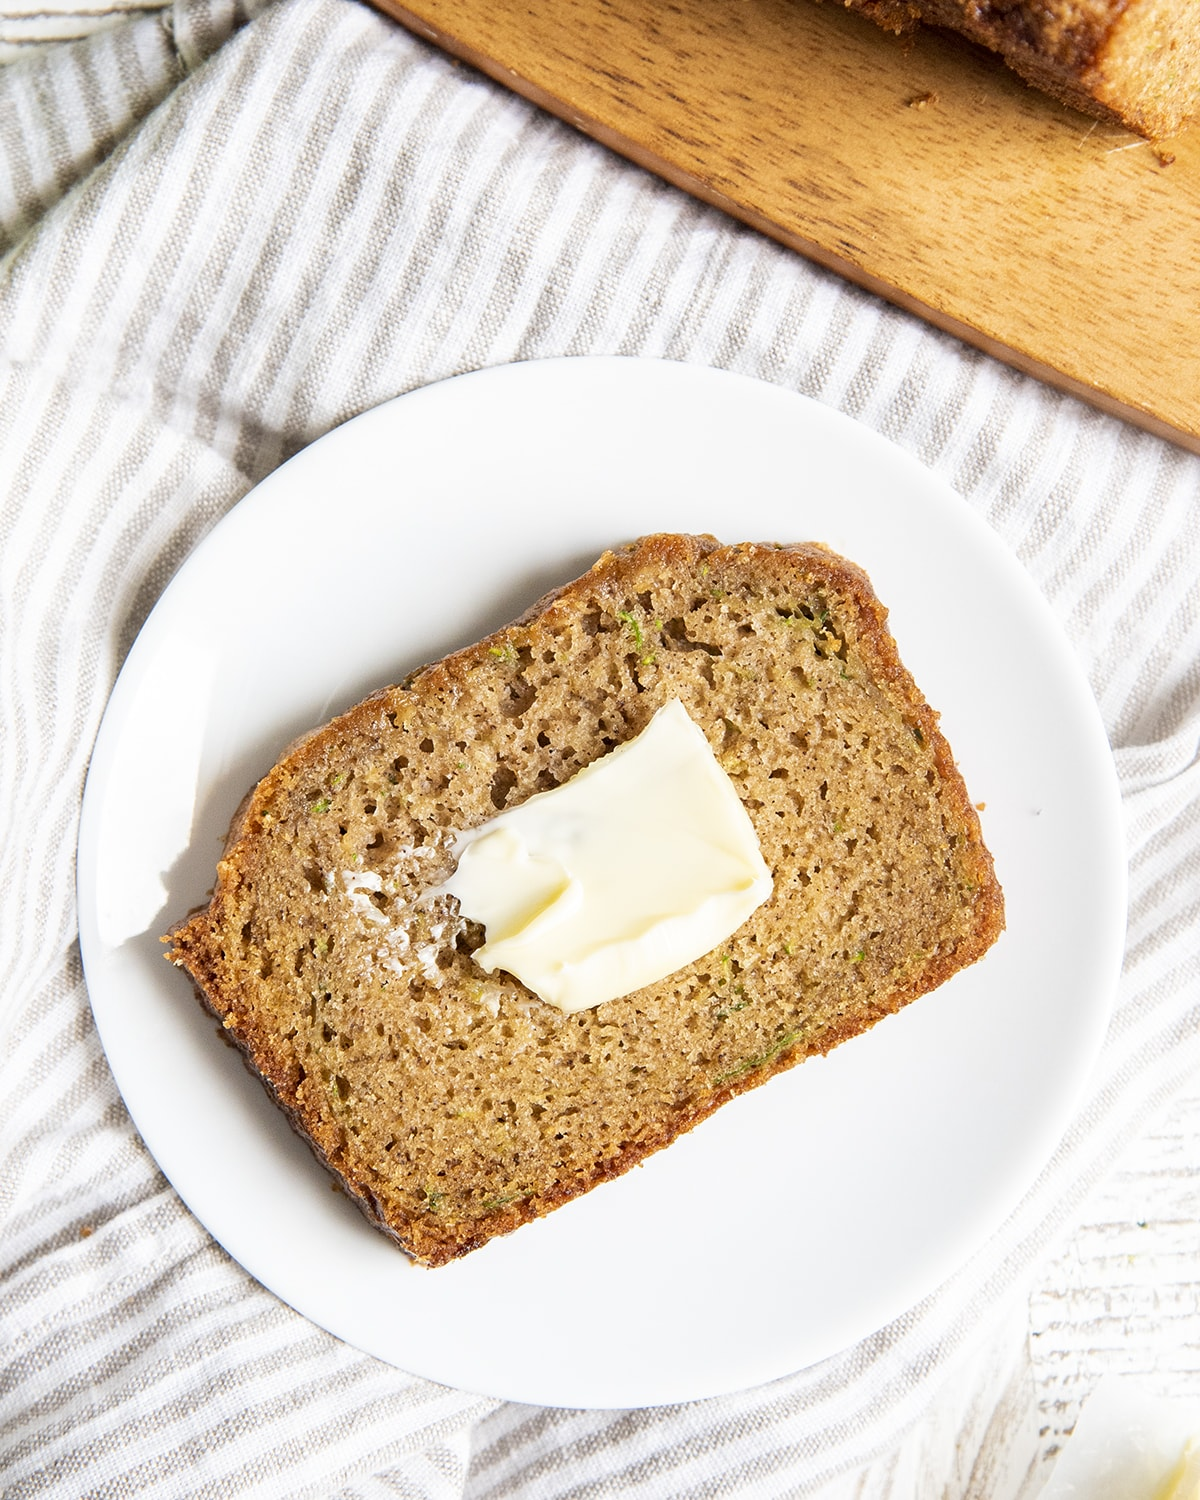 A piece of zucchini bread on a white plate with butter spread on it.